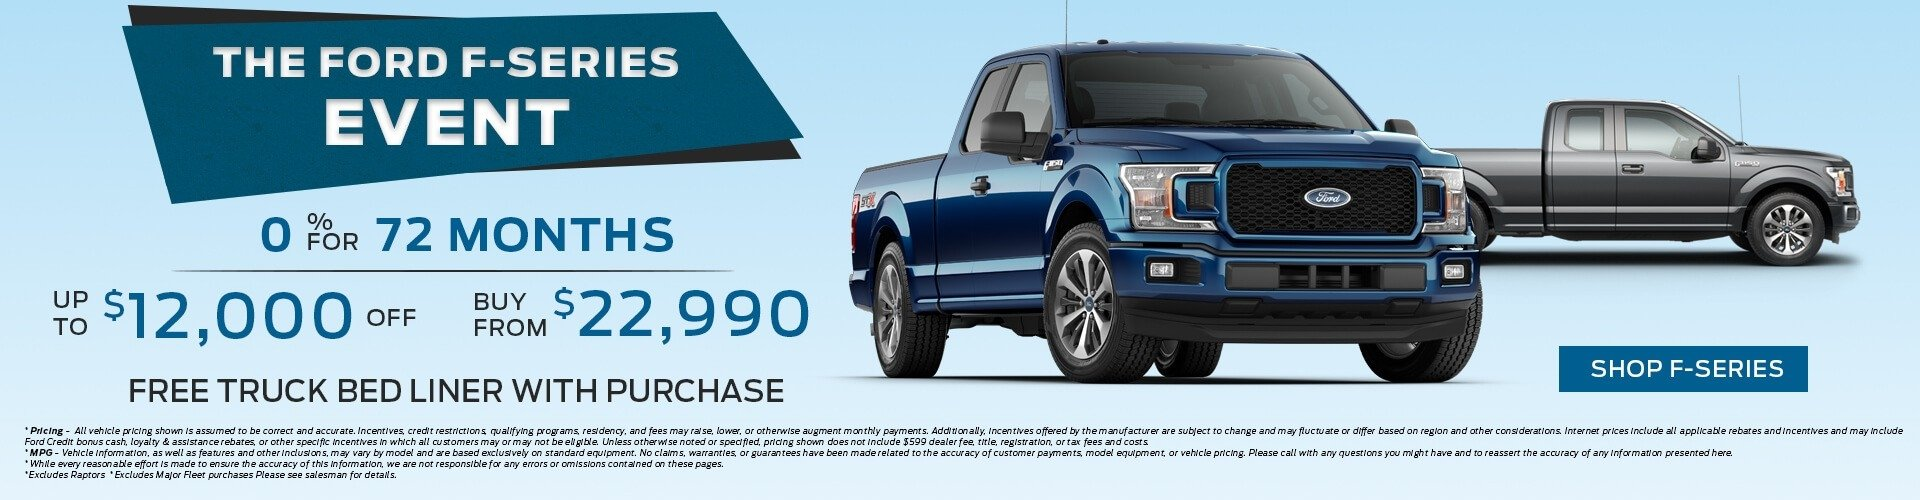 Ford F-Series Event